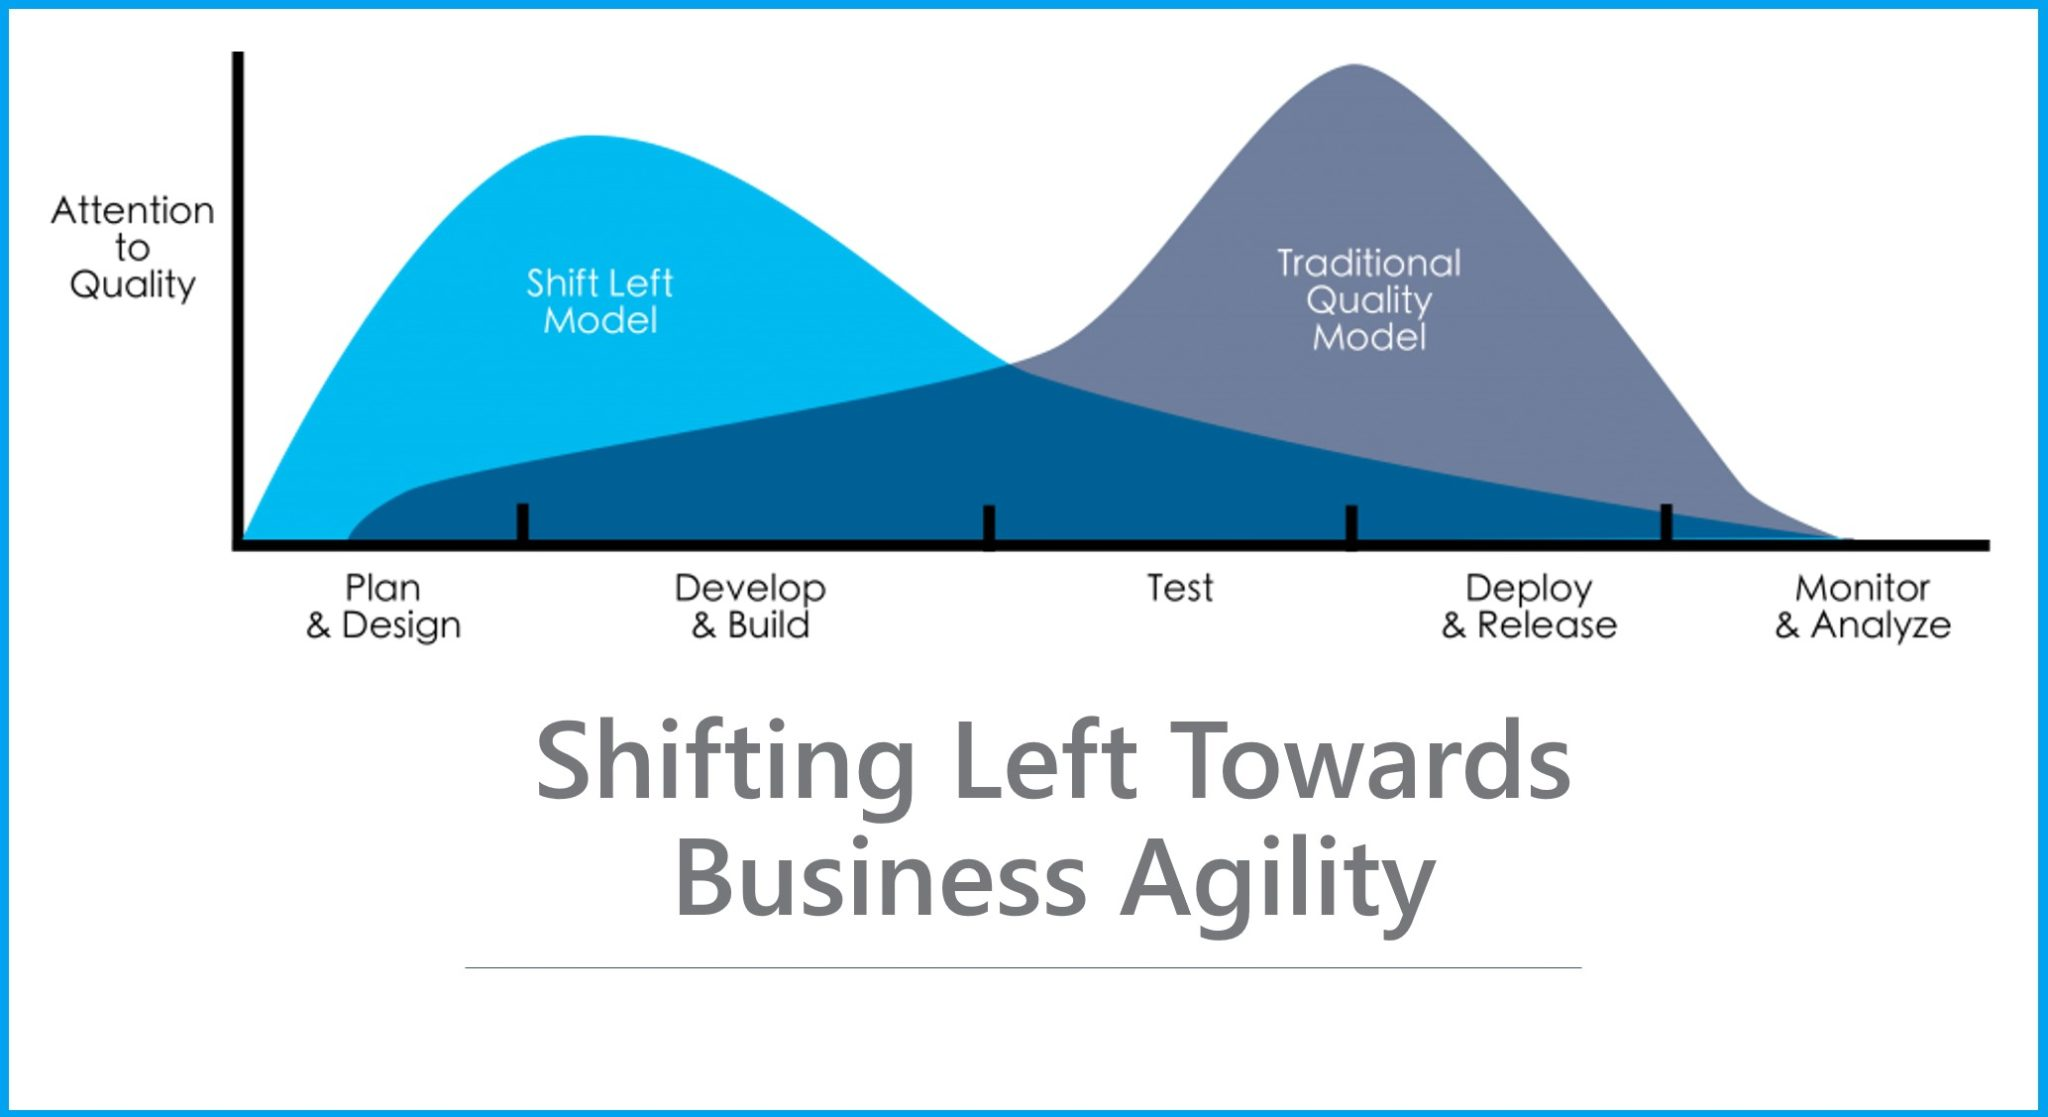 Shifting Left Towards Business Agility